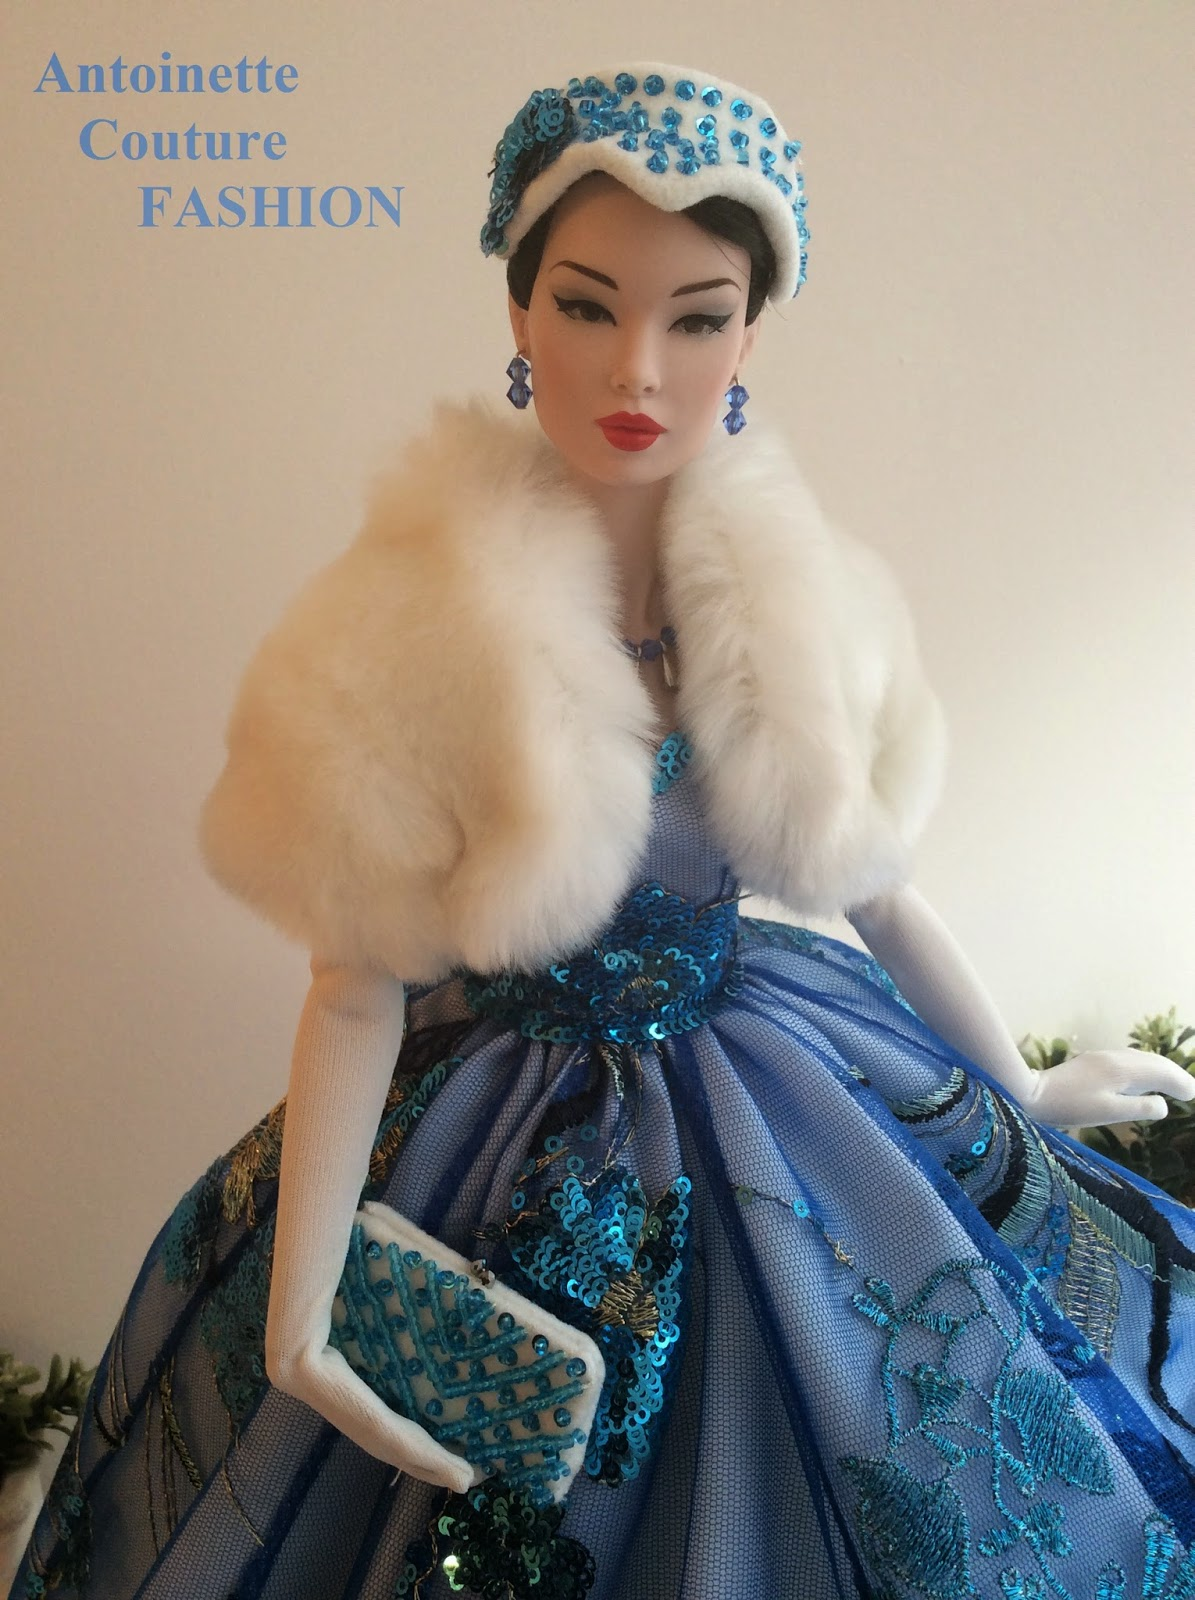 Hats & Accessories - Francesca Doll Couture